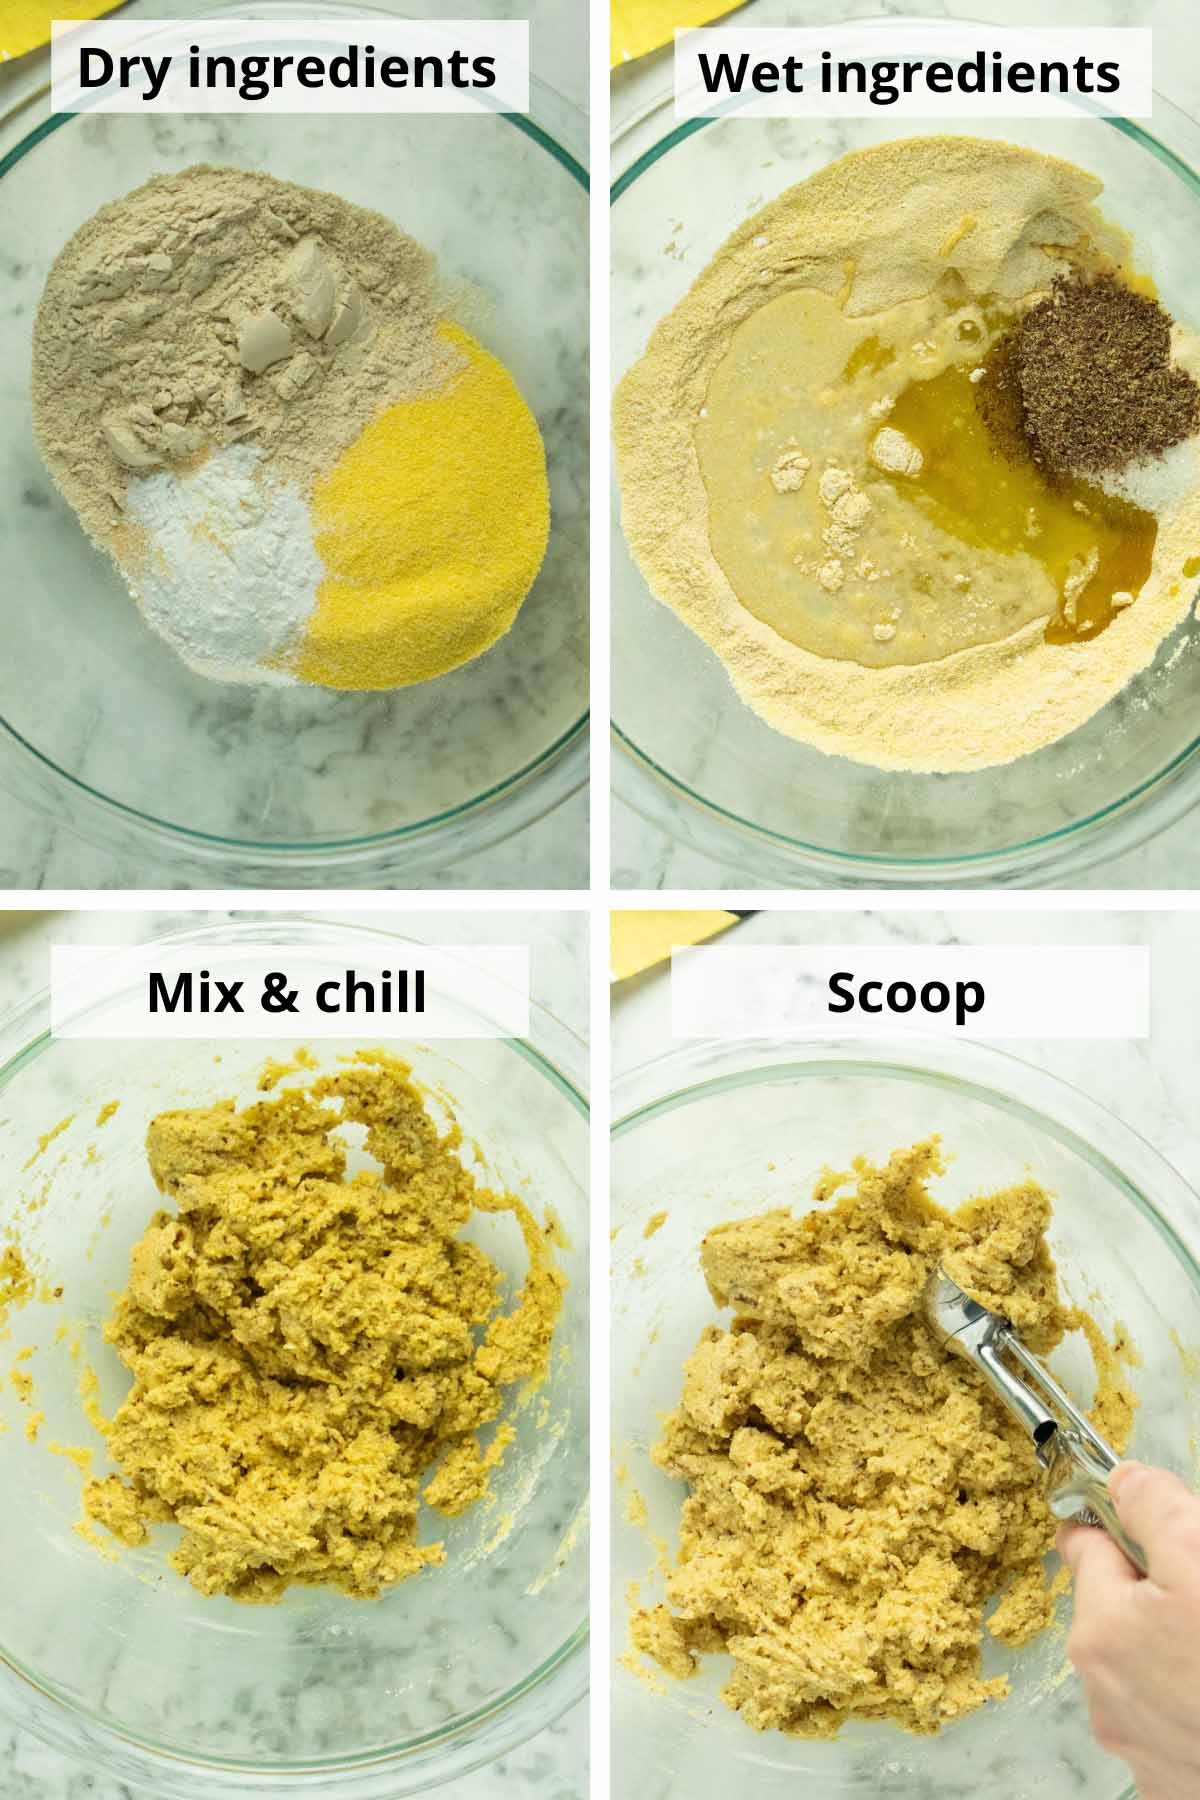 image collage showing the steps to make the batter